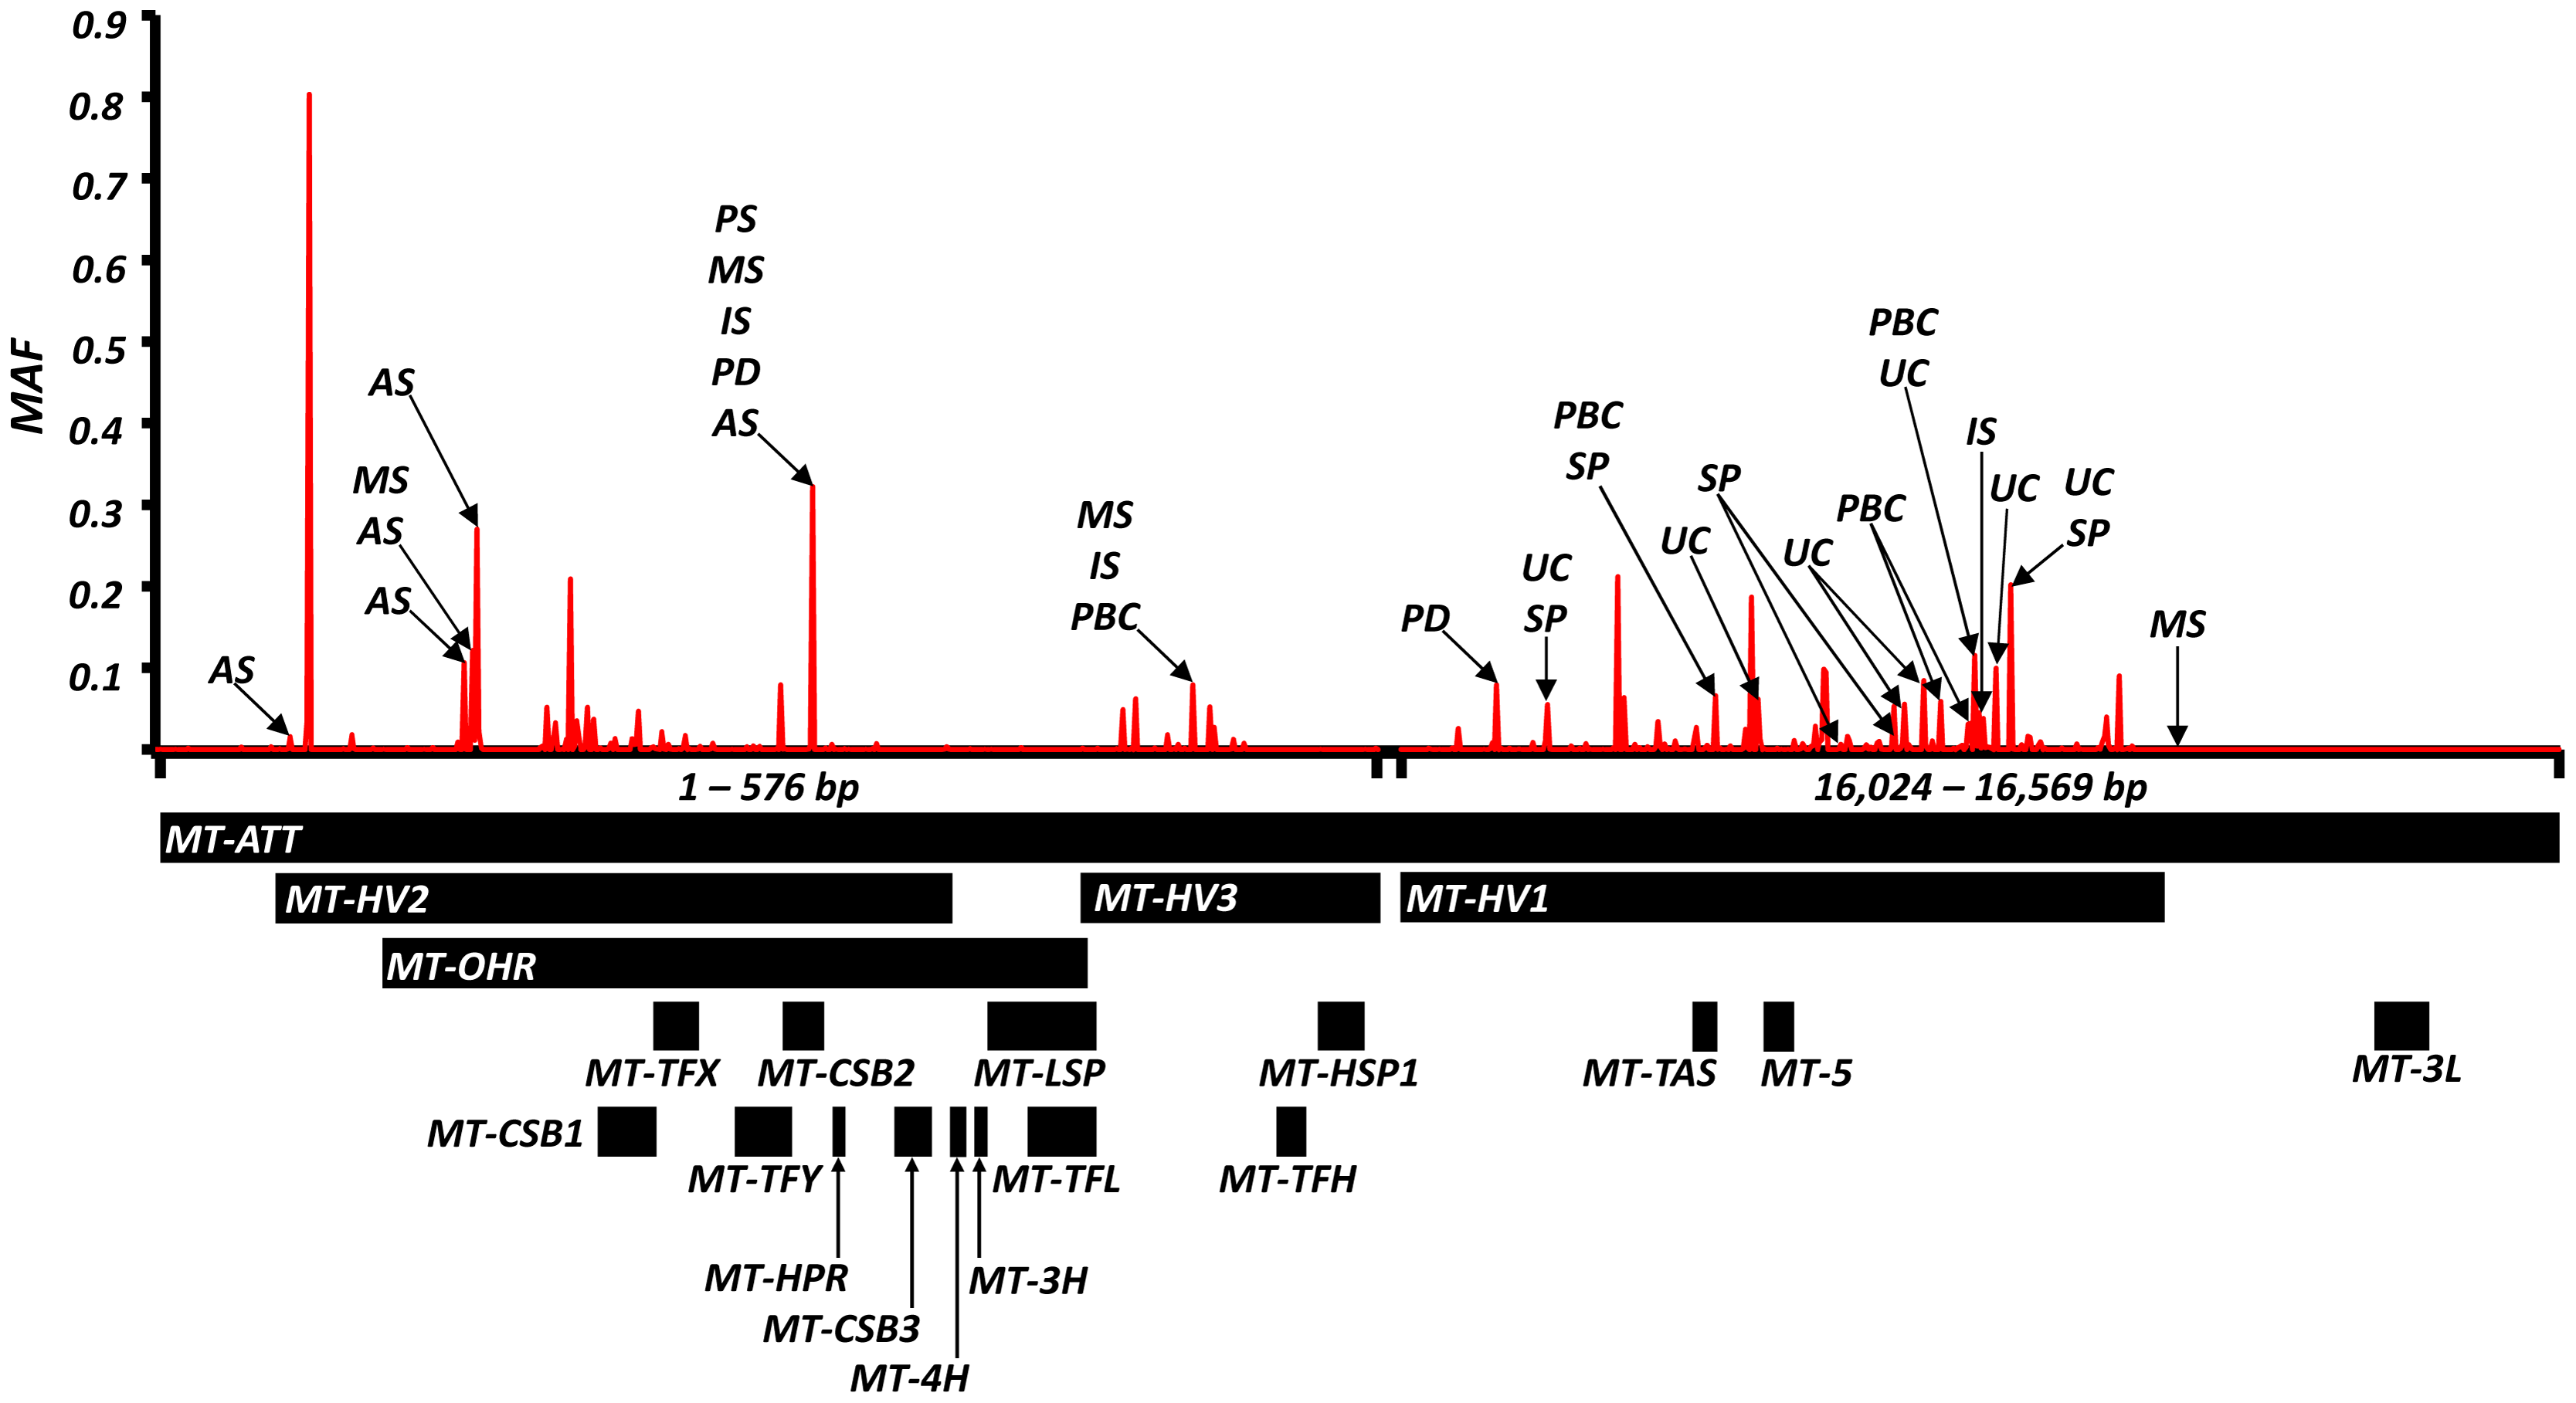 High-resolution map of the non-coding region of mtDNA (d-loop) showing allele frequencies in 7,729 control subjects and the position of alleles associated with eight common human diseases; where: AS = ankylosing spondylitis, IS = ischaemic stroke, MS = multiple sclerosis, PD = Parkinson's disease, PBC = primary biliary cirrhosis, UC = ulcerative colitis and SP = schizophrenia.